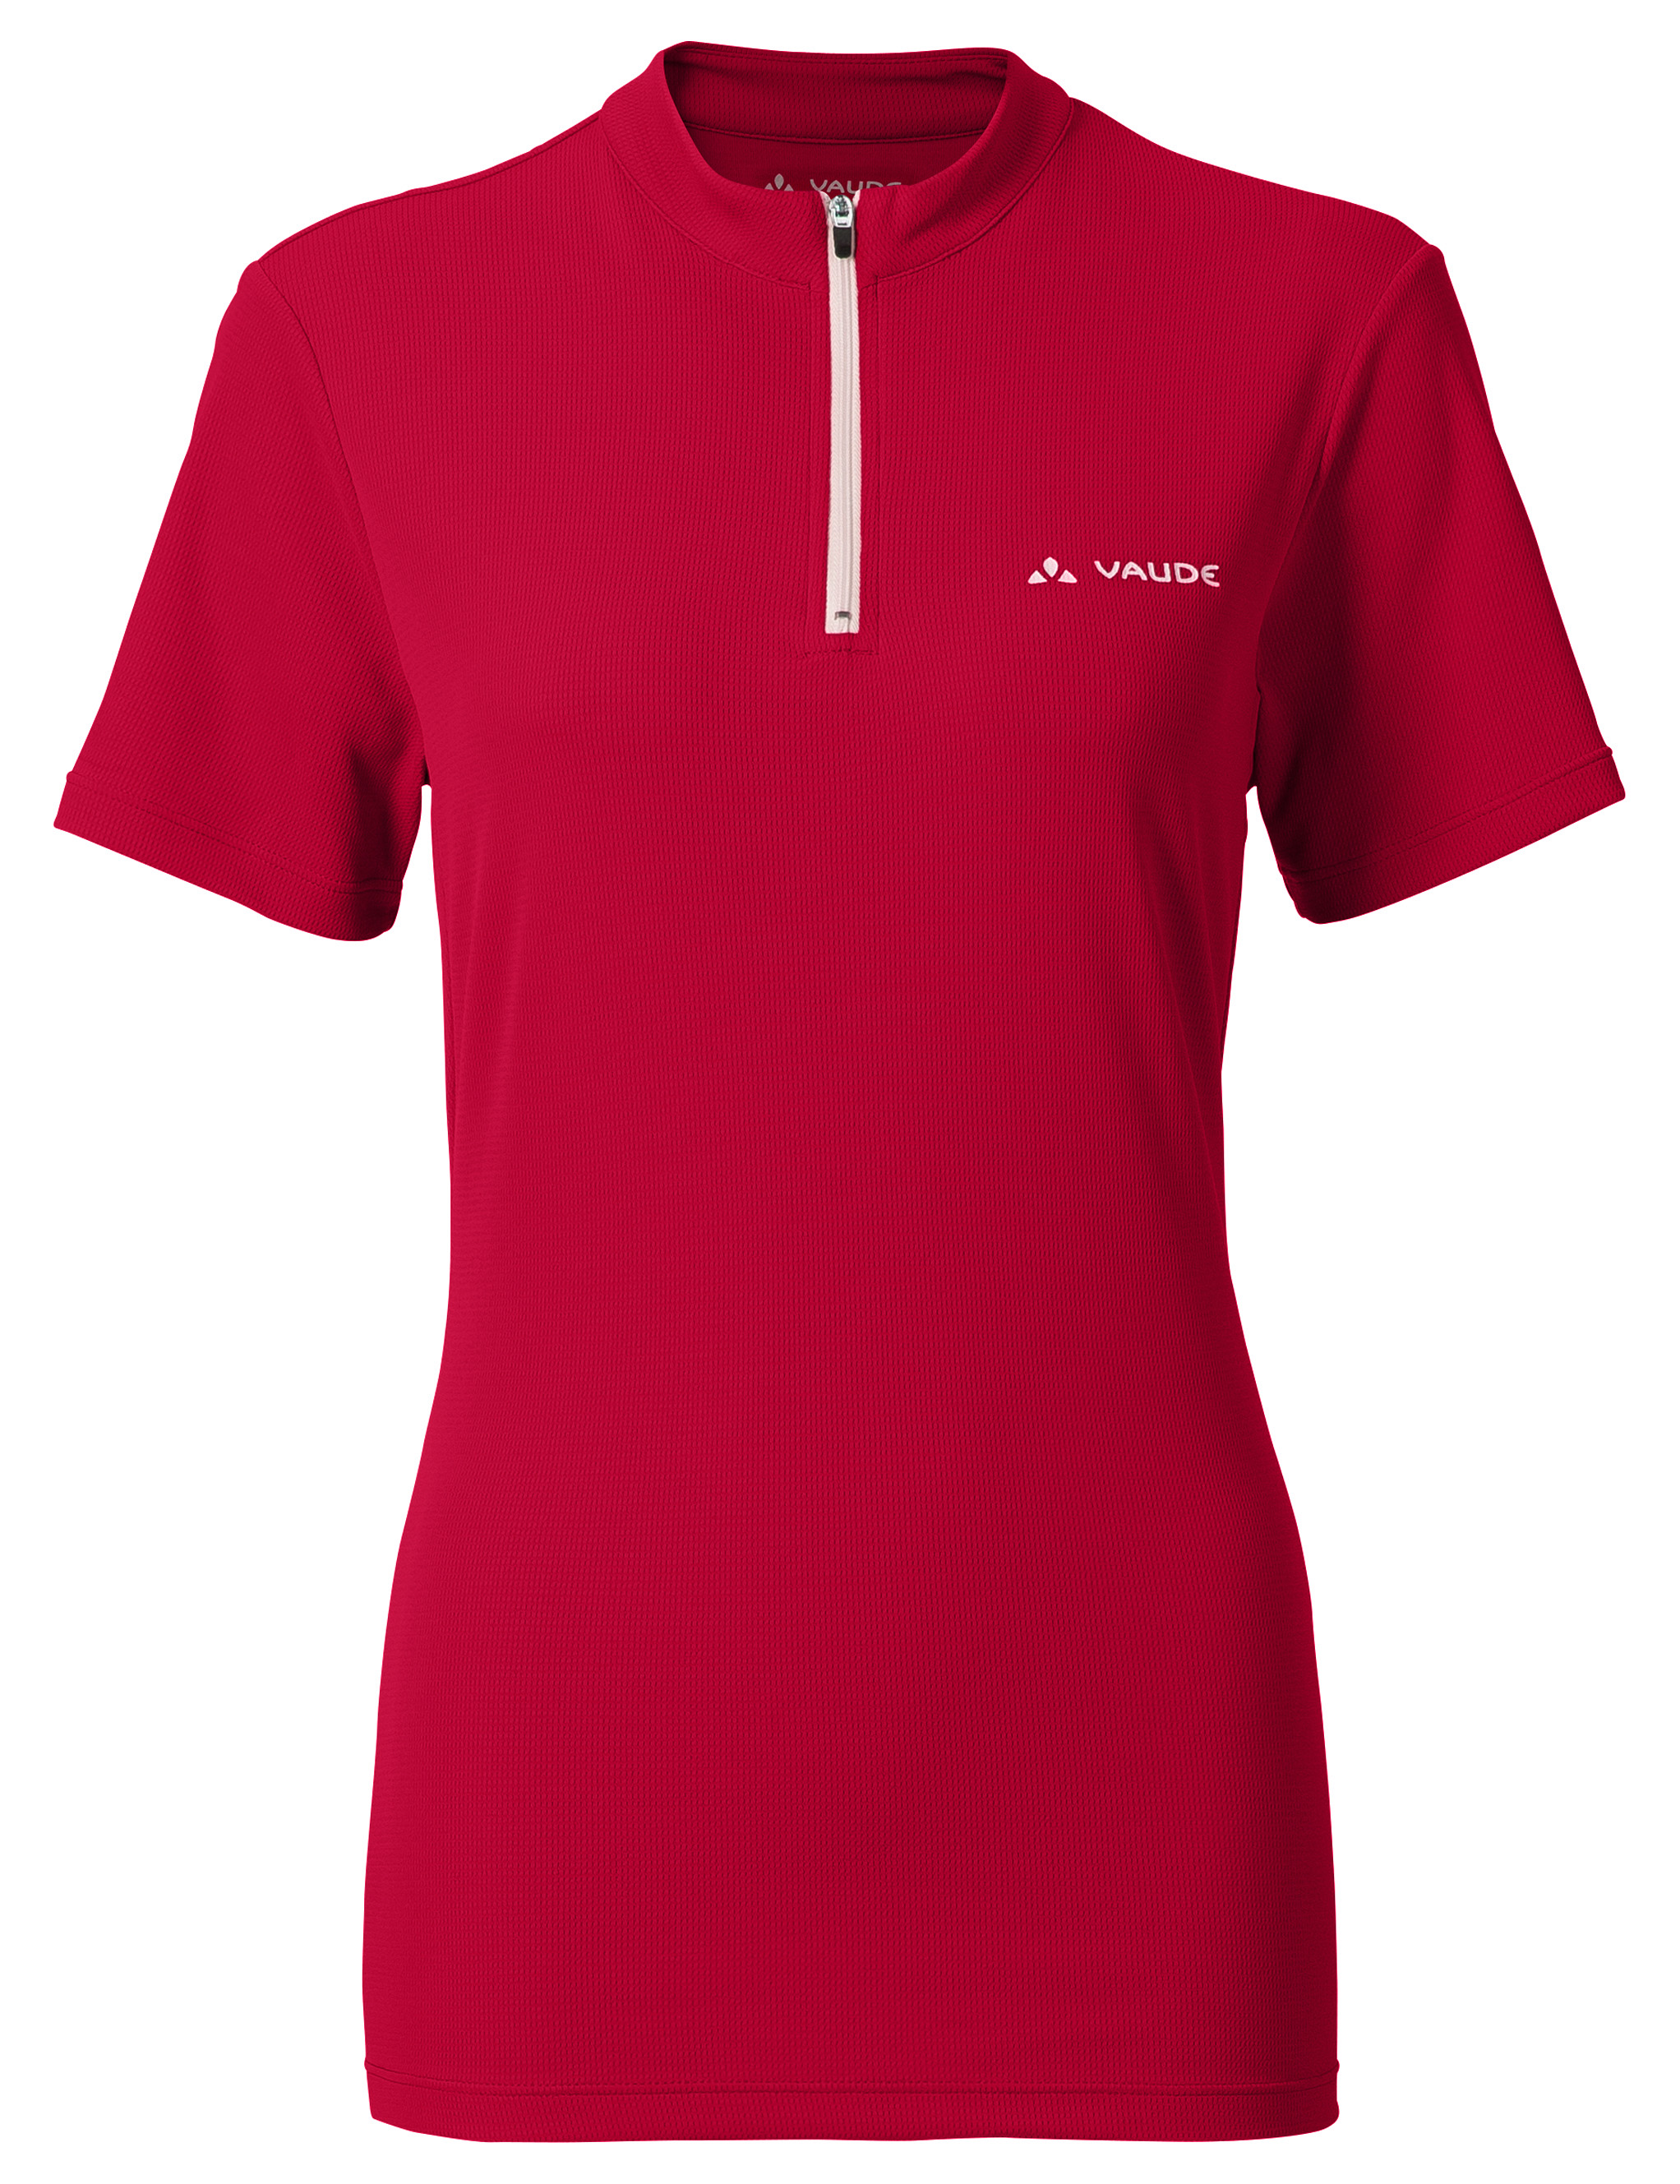 VAUDE Women´s Brand Tec Shirt indian red Größe 34 - schneider-sports